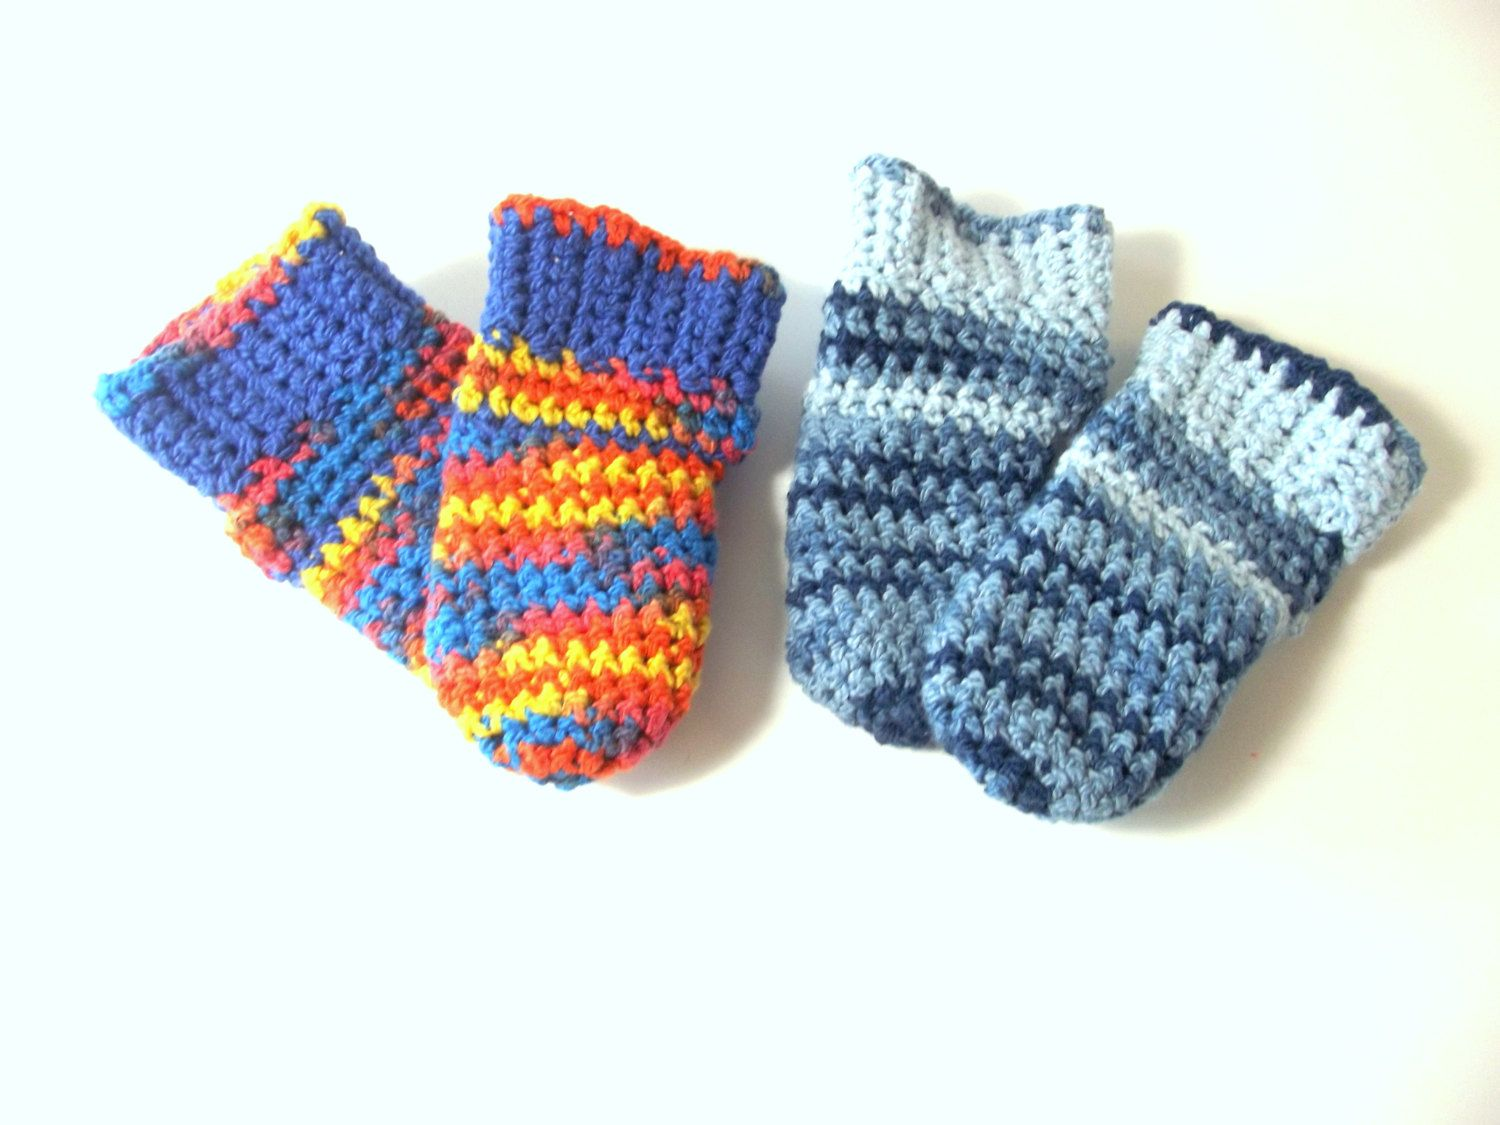 Newborn Clothing Socks – Crochet Boot Socks - Comfy Socks For Newborn - Infant Socks by SewDarnComfy on Etsy